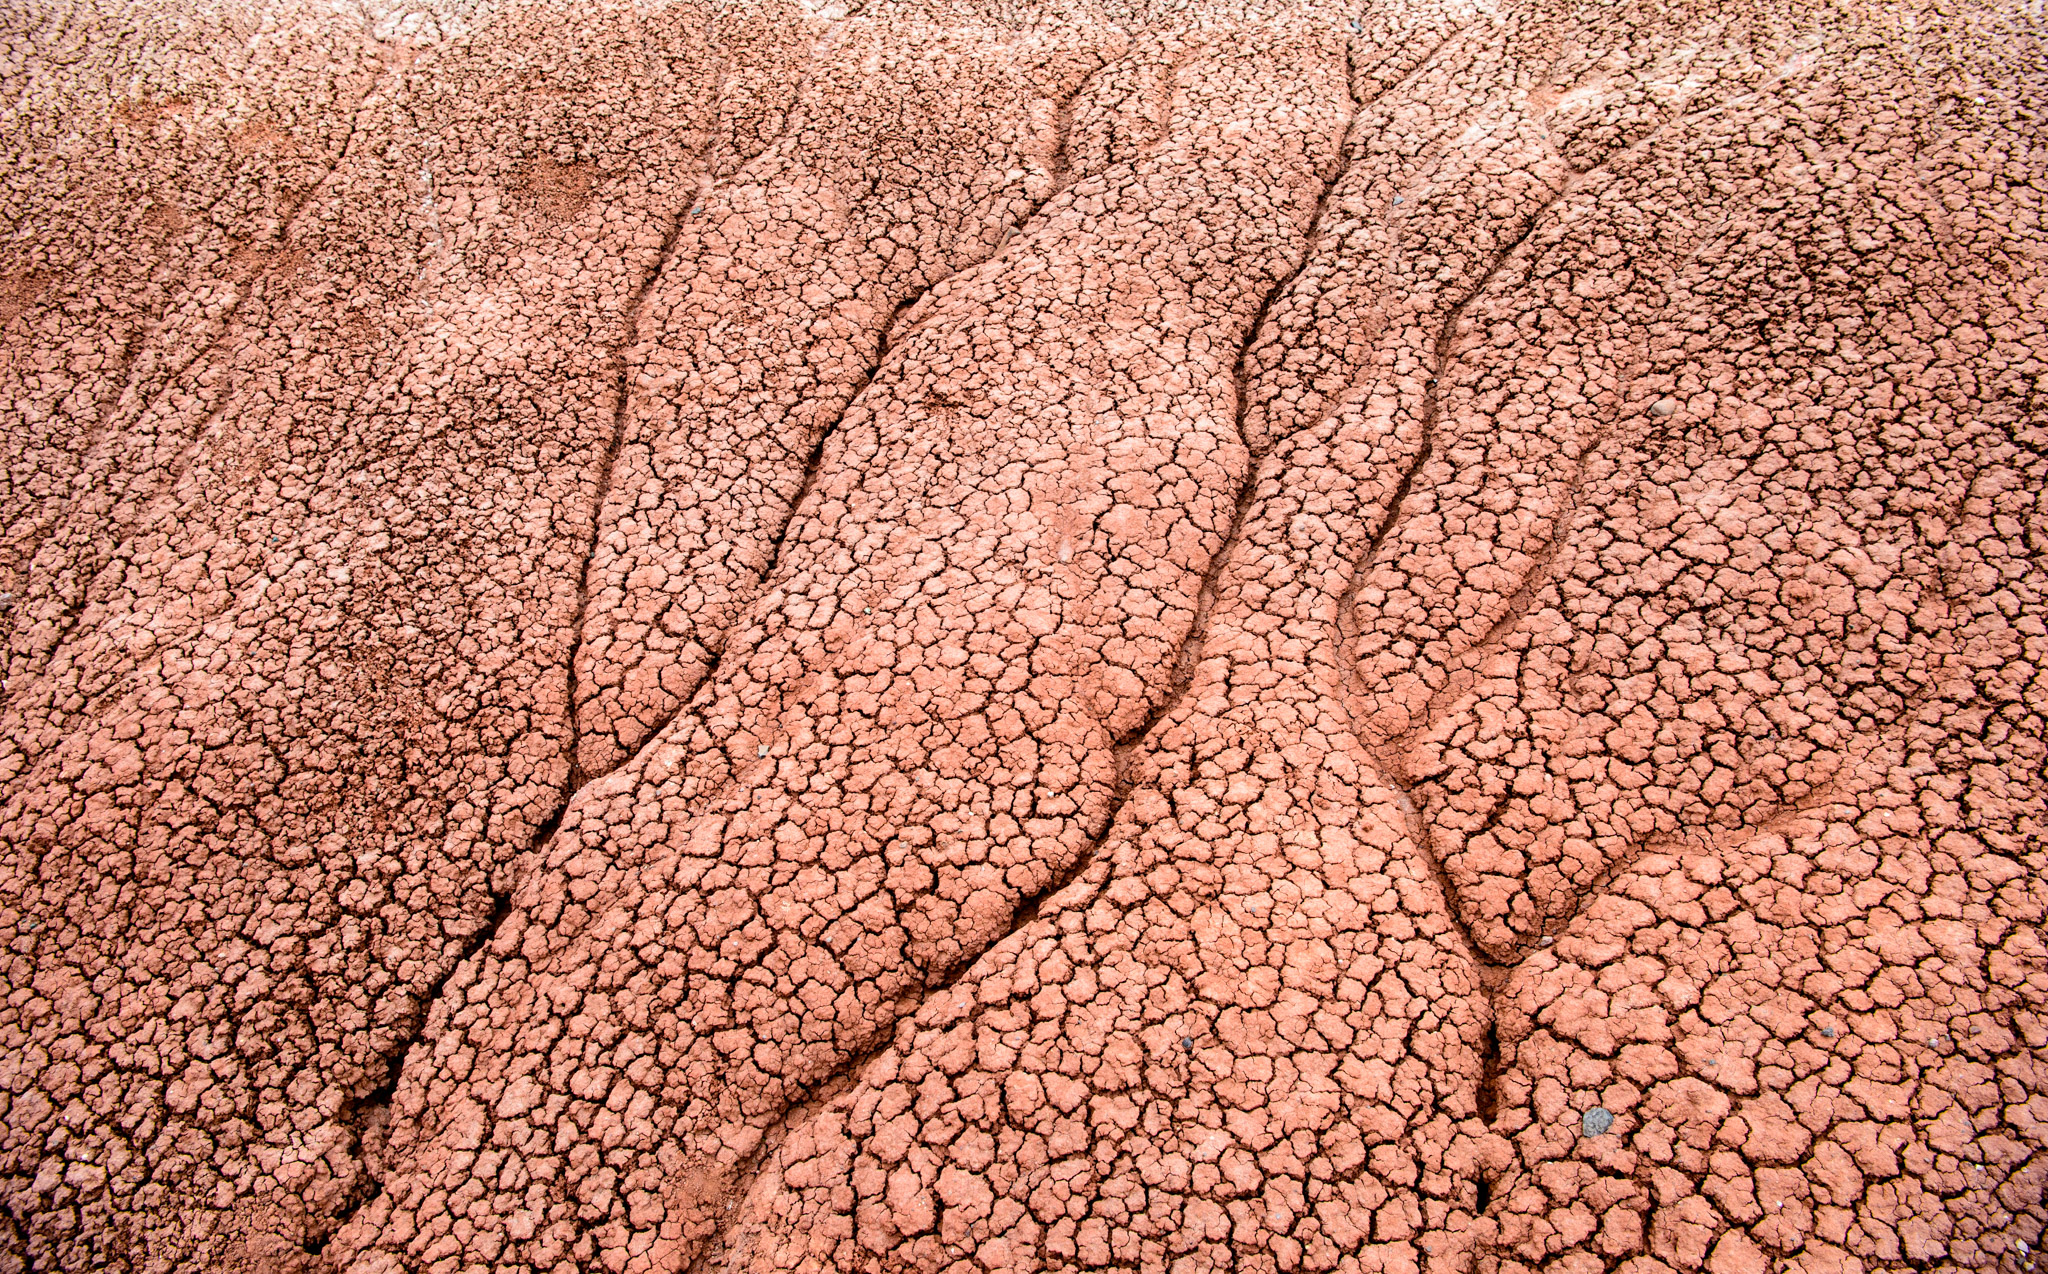 Mudcracks in the Painted Hills